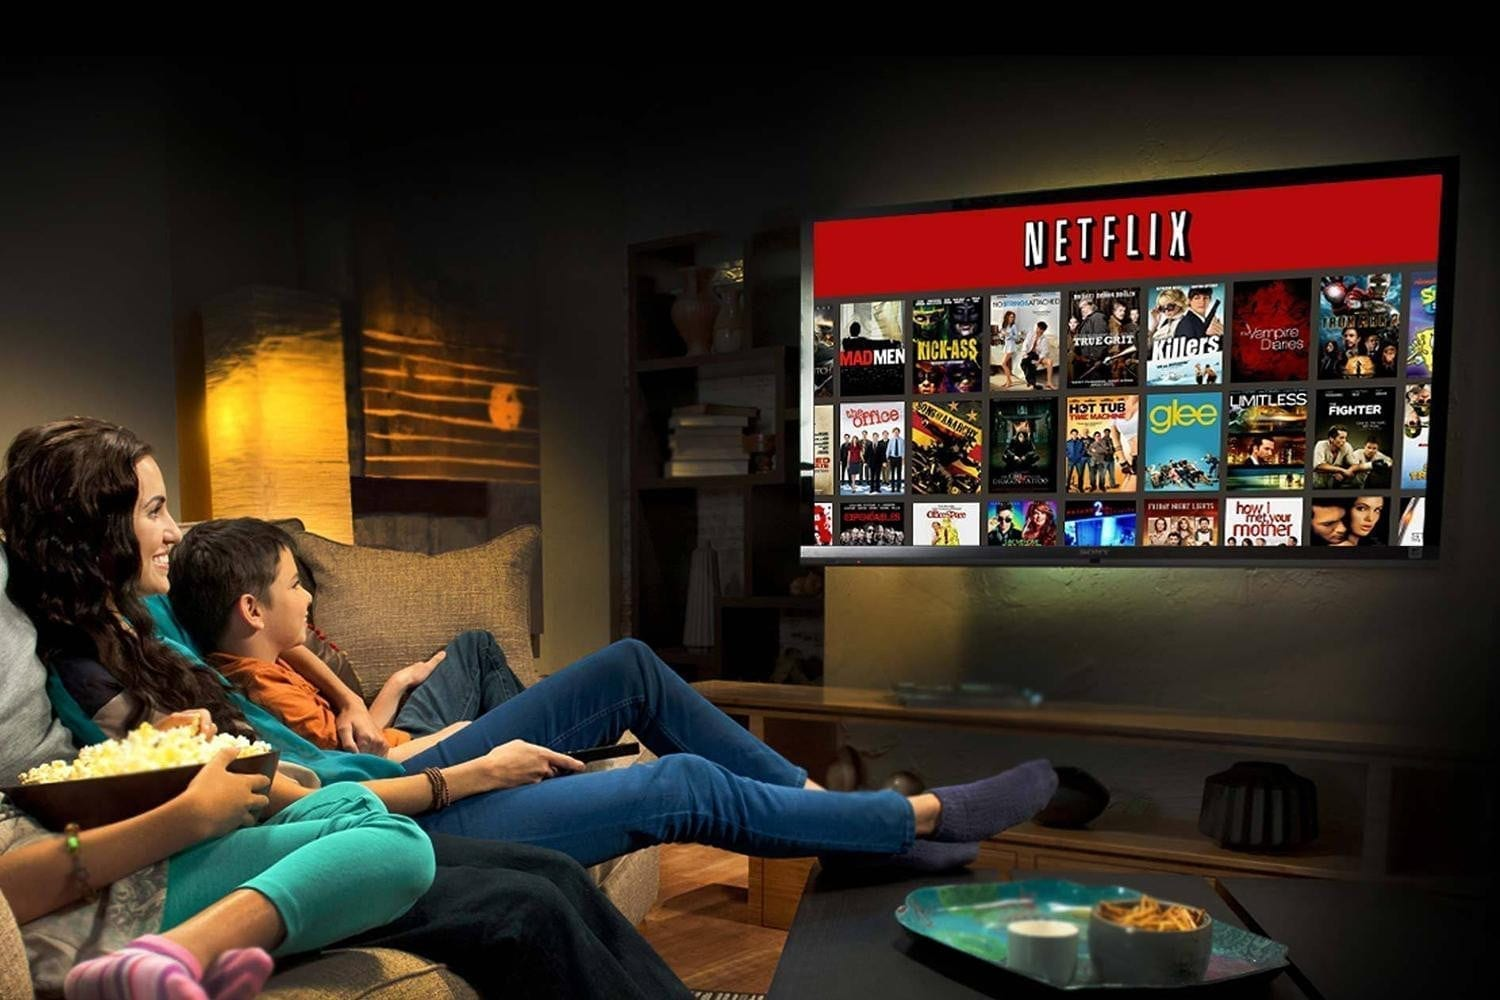 Author Sues Netflix for Allegedly Stealing Plot, Receives Court's Support